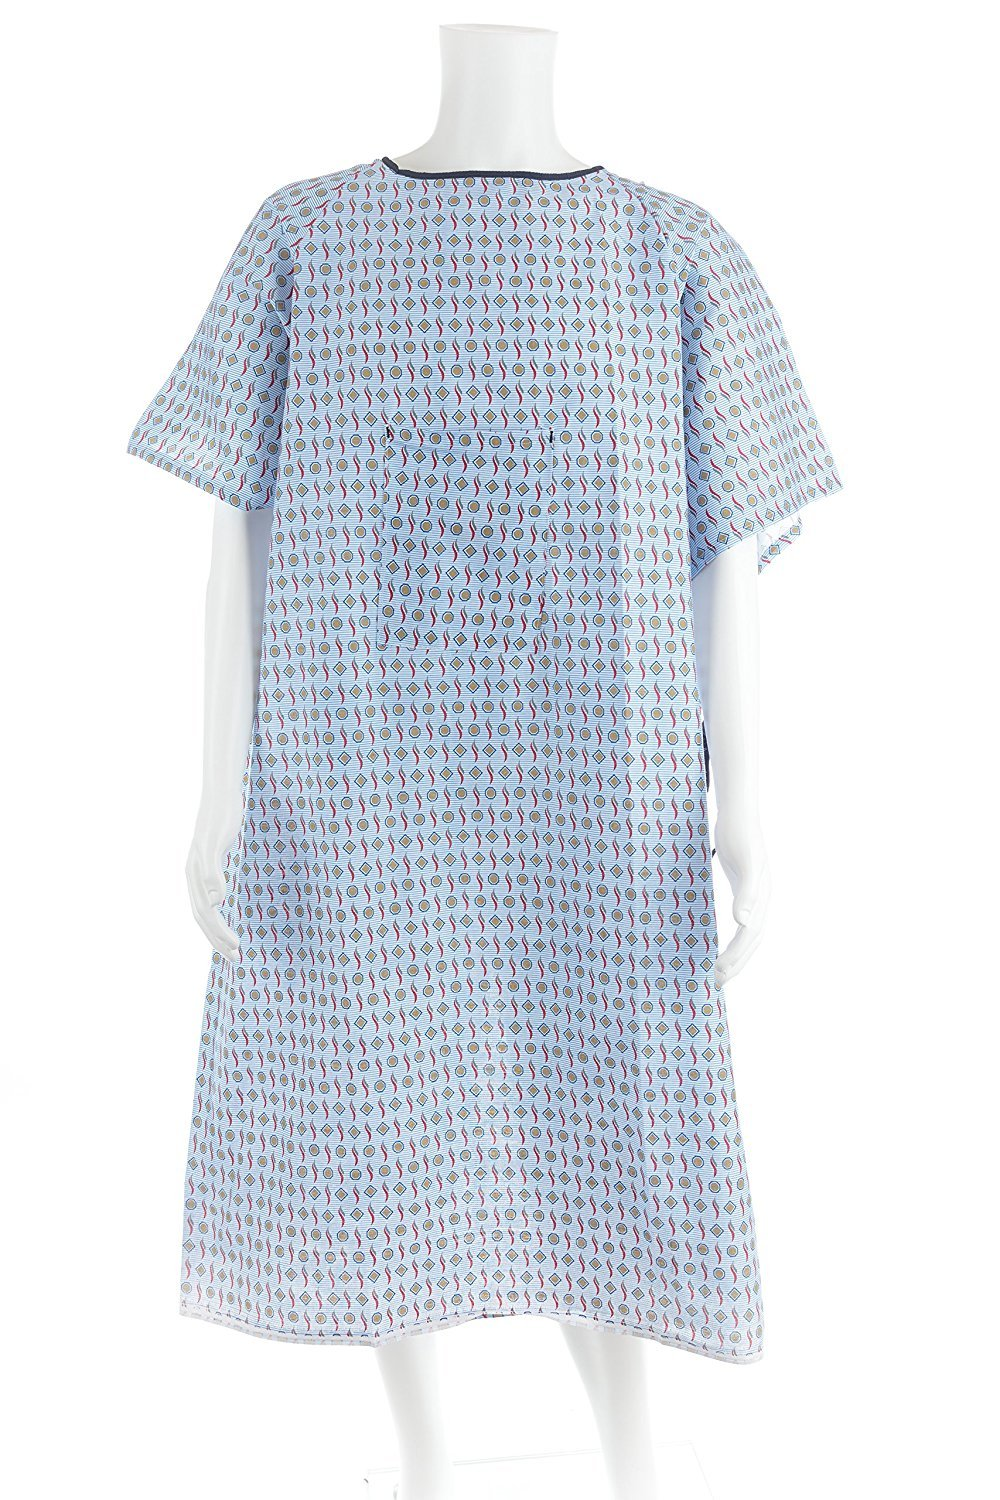 Personal Touch Top of The Line Patient Gowns, Back Tie (2-Pack) Demure Print, Comfortable Polyester and Cotton Blend is Easy-Care, and Fits All Sizes Up To 2XL,